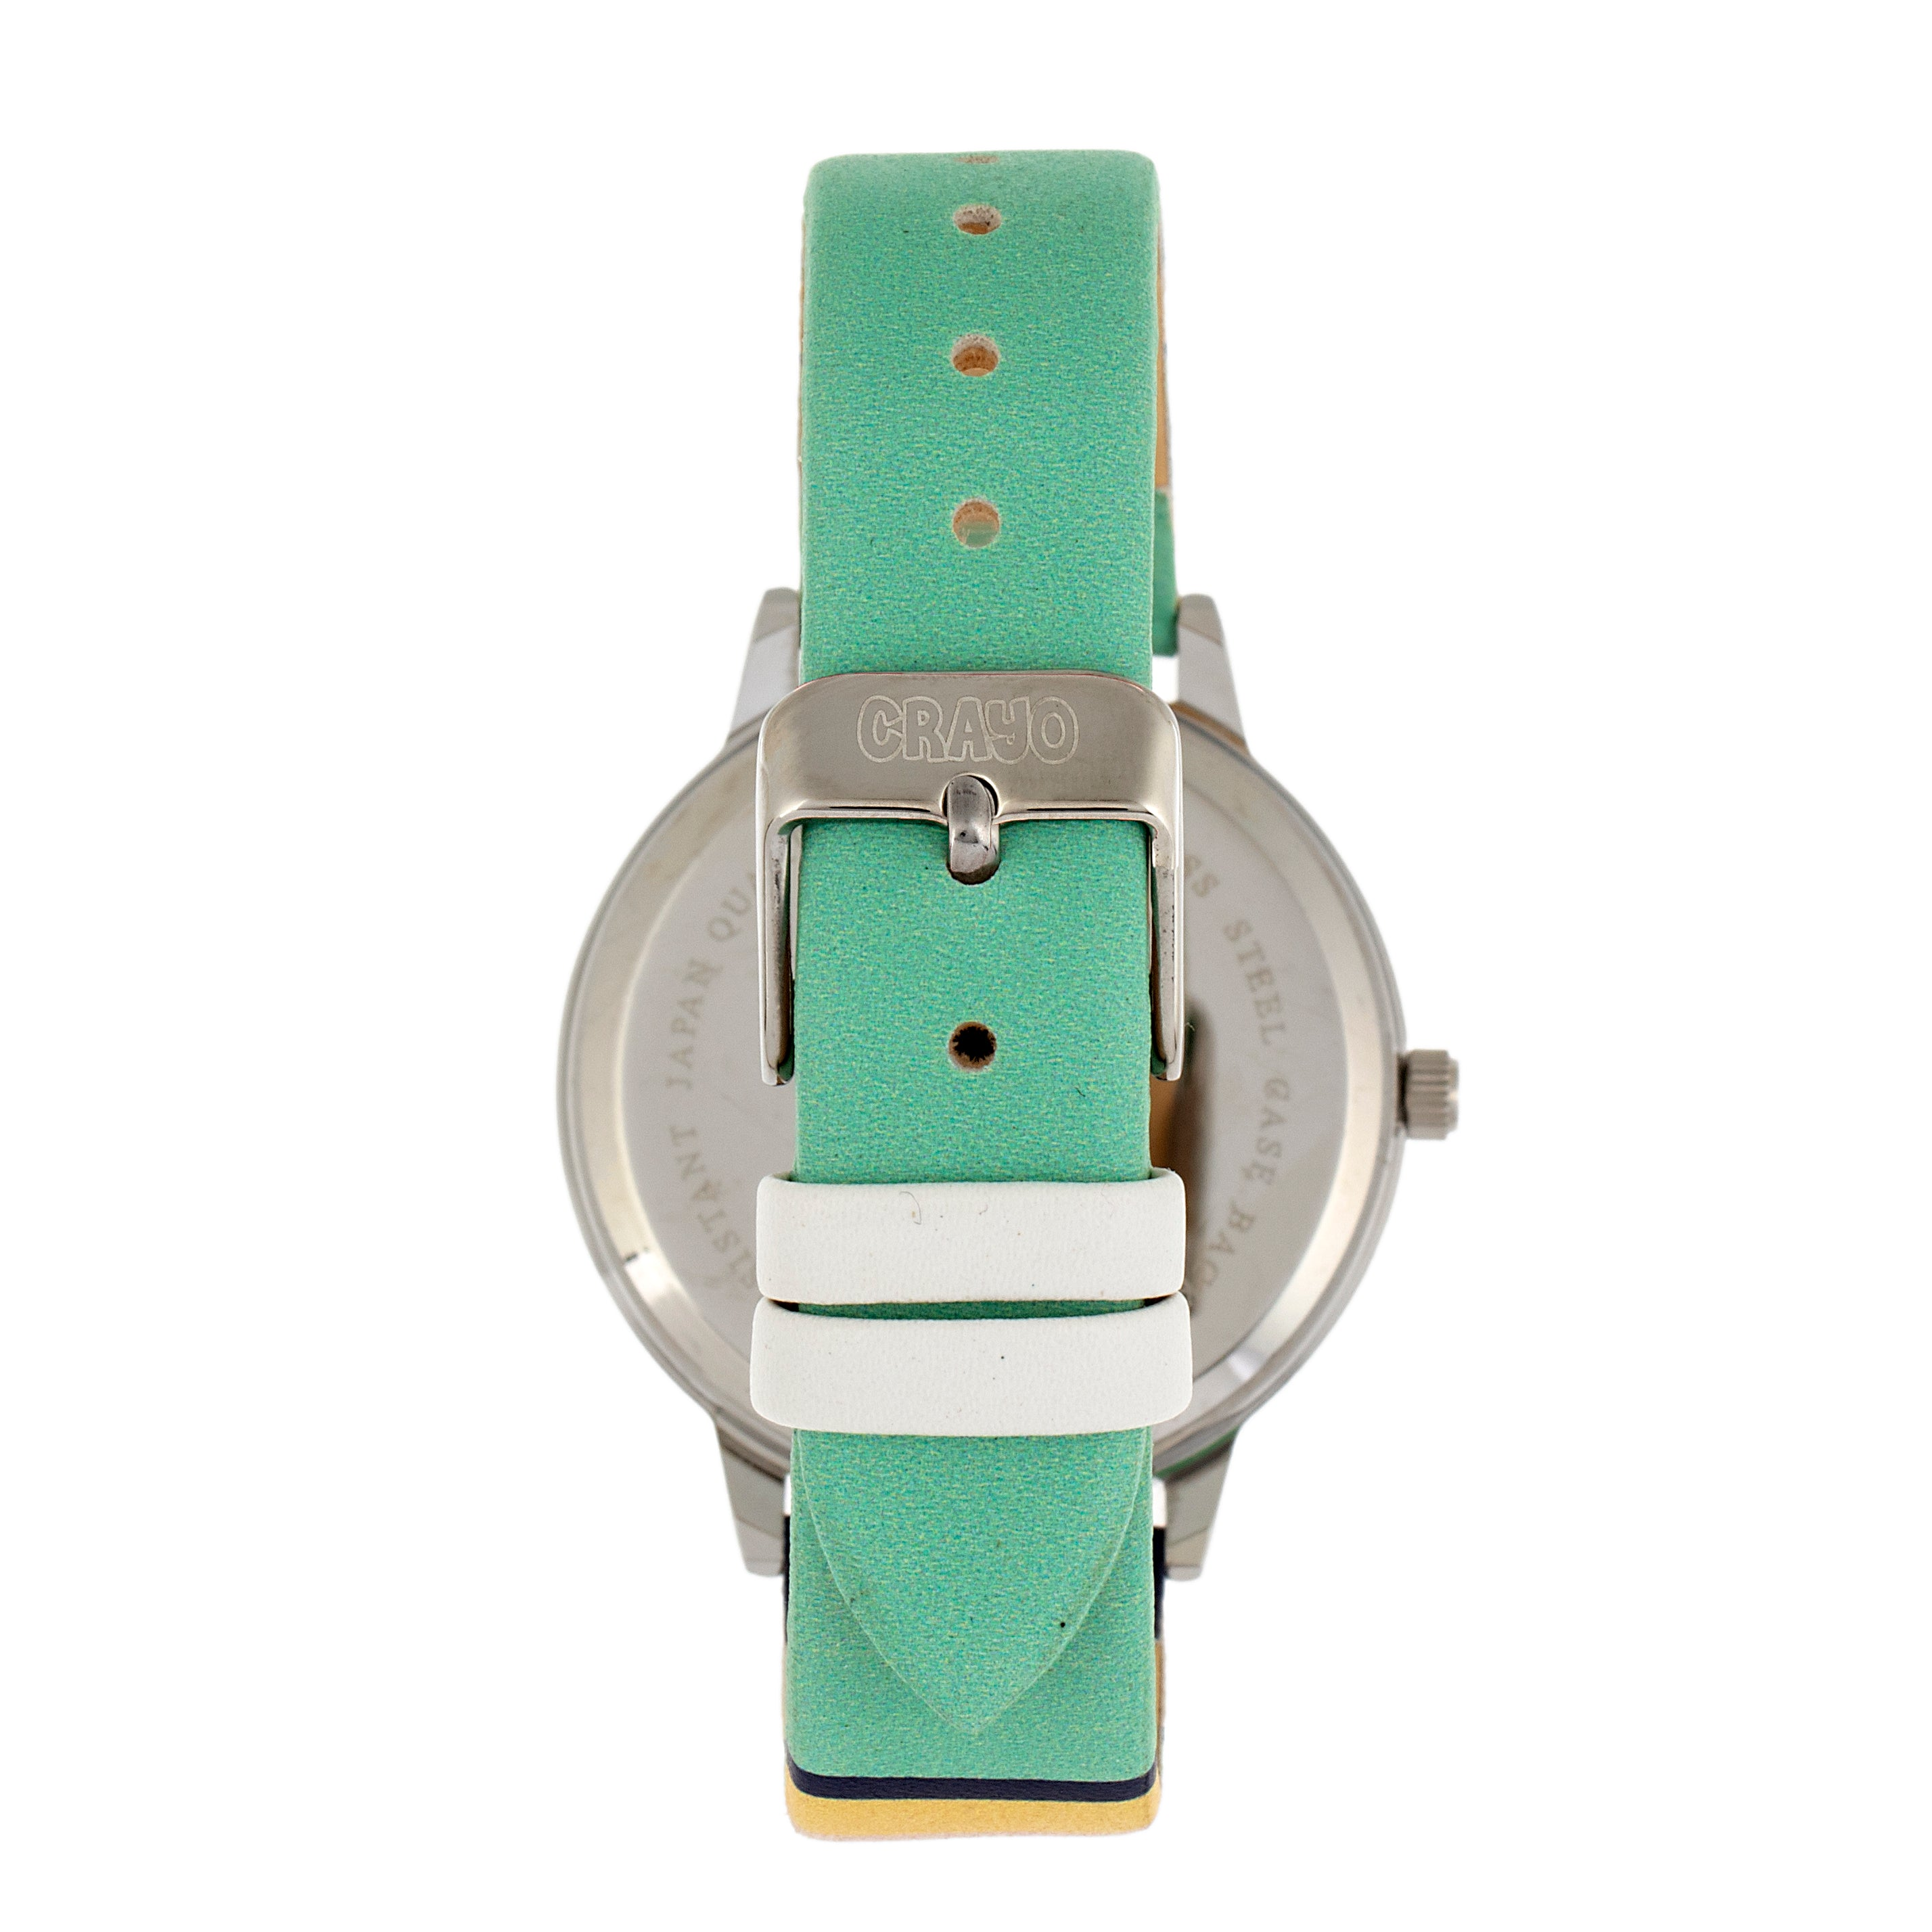 Crayo Swing Unisex Watch - Silver - CRACR5701